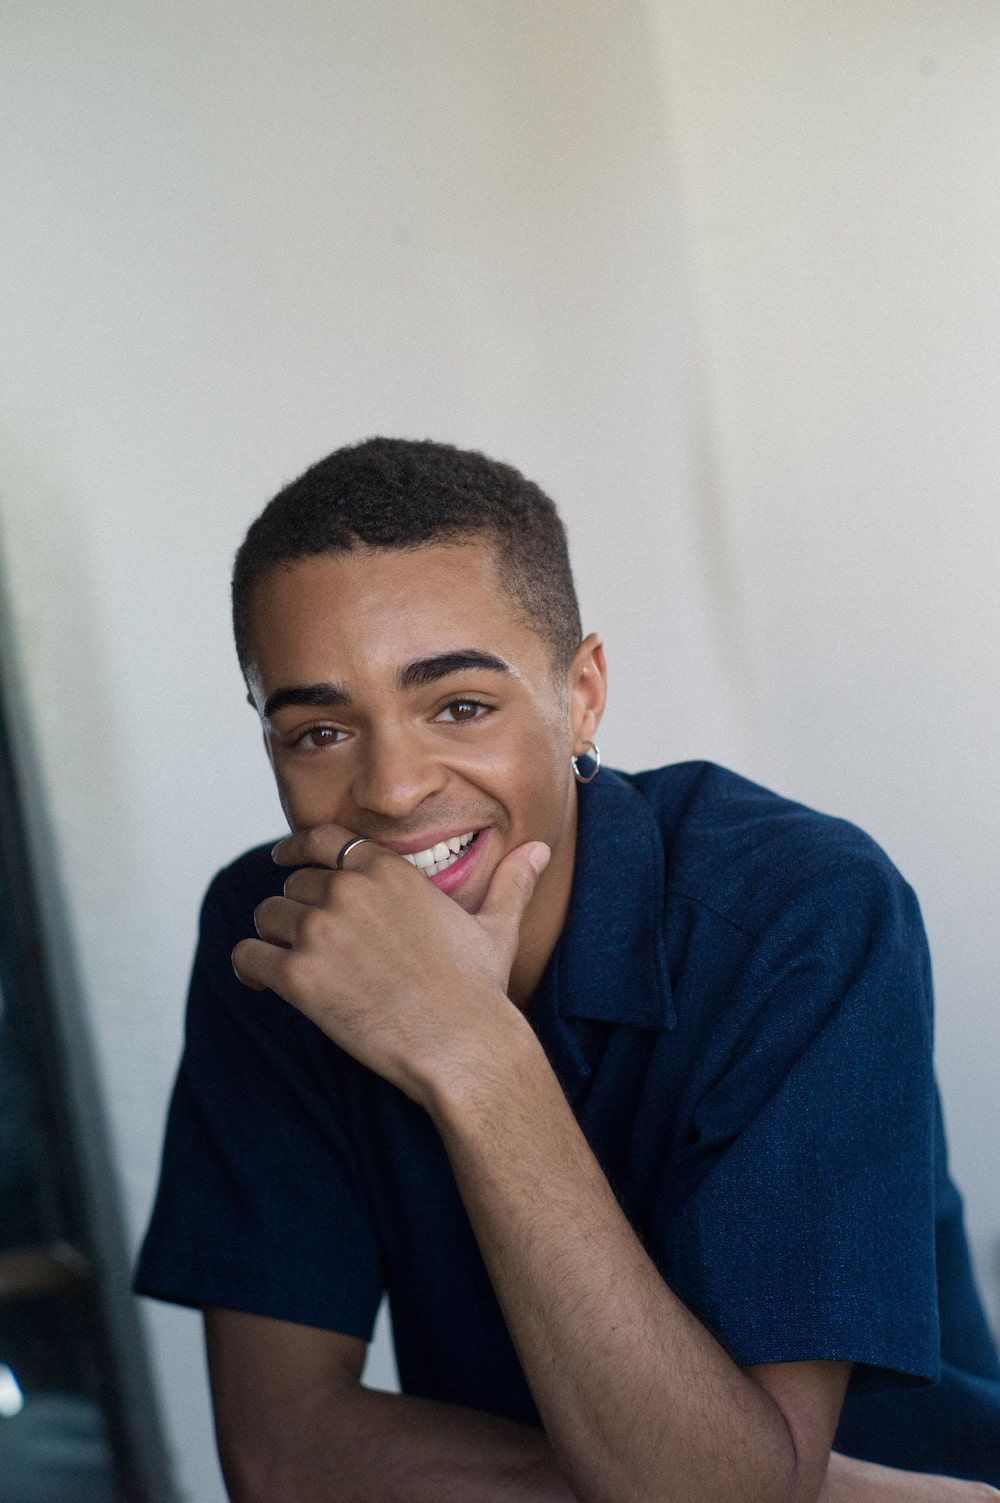 Layton Williams laughing